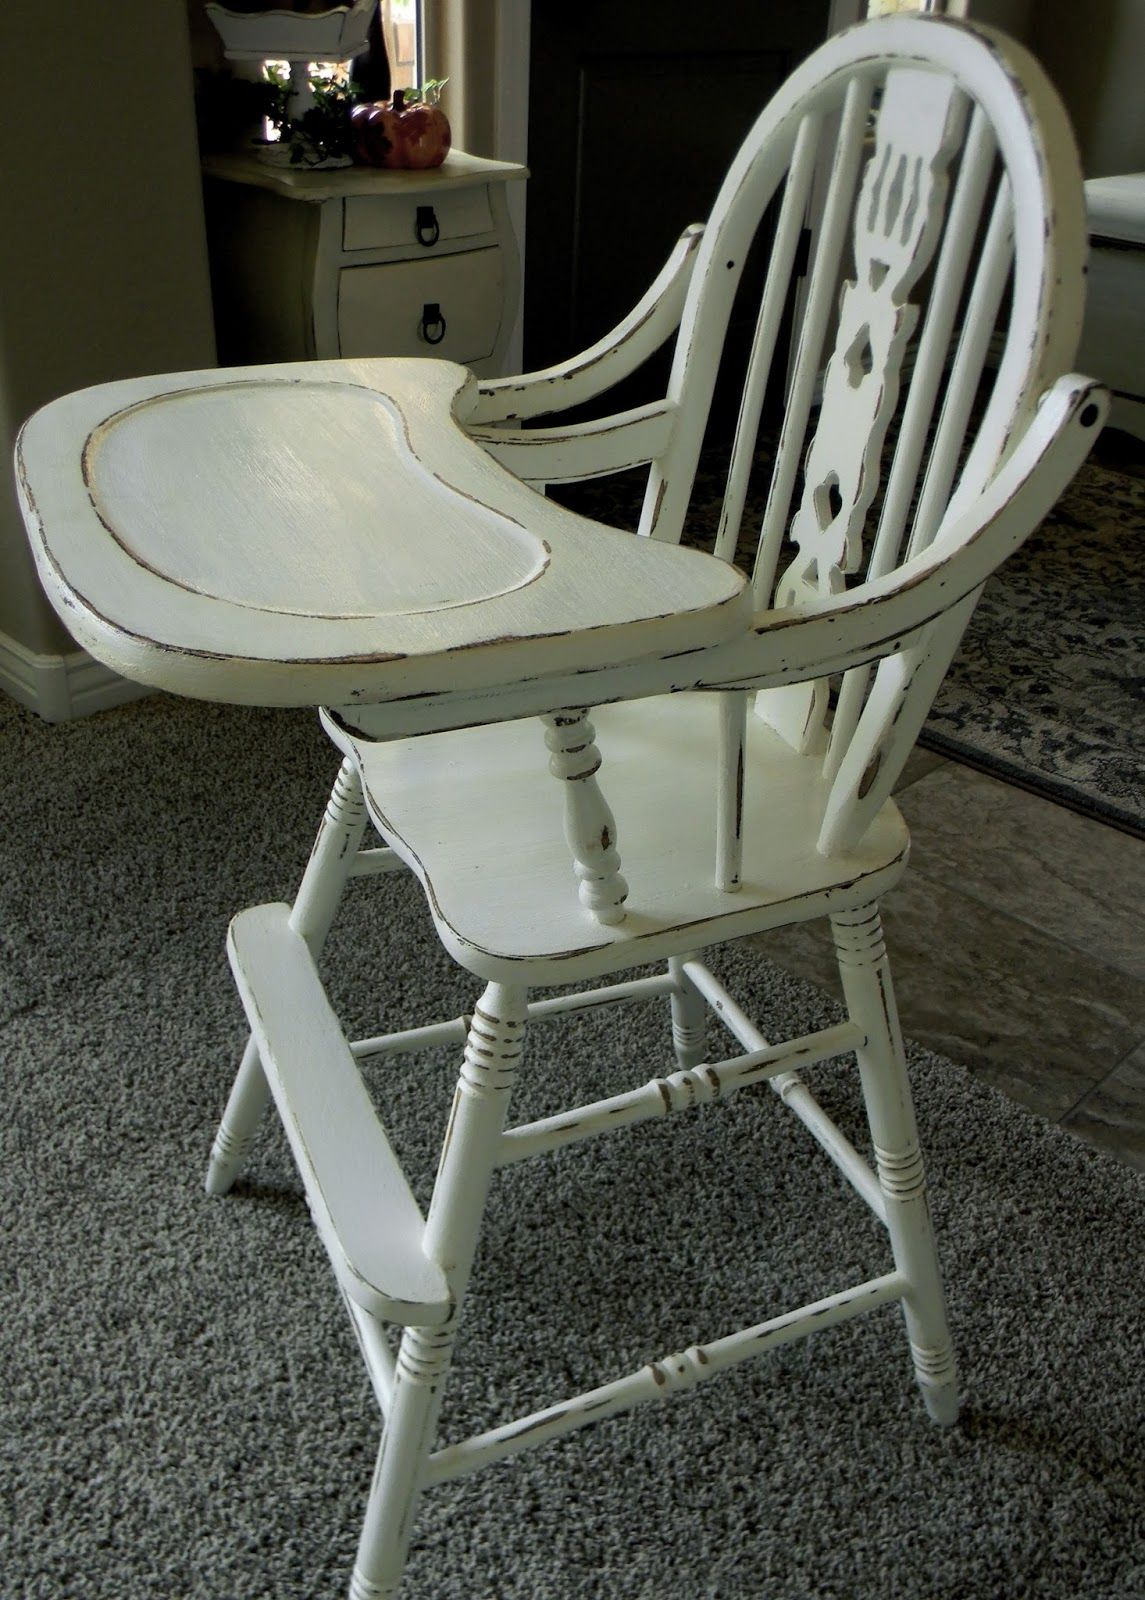 Antique high chair converts to rocking chair - Refinished Antique High Chair